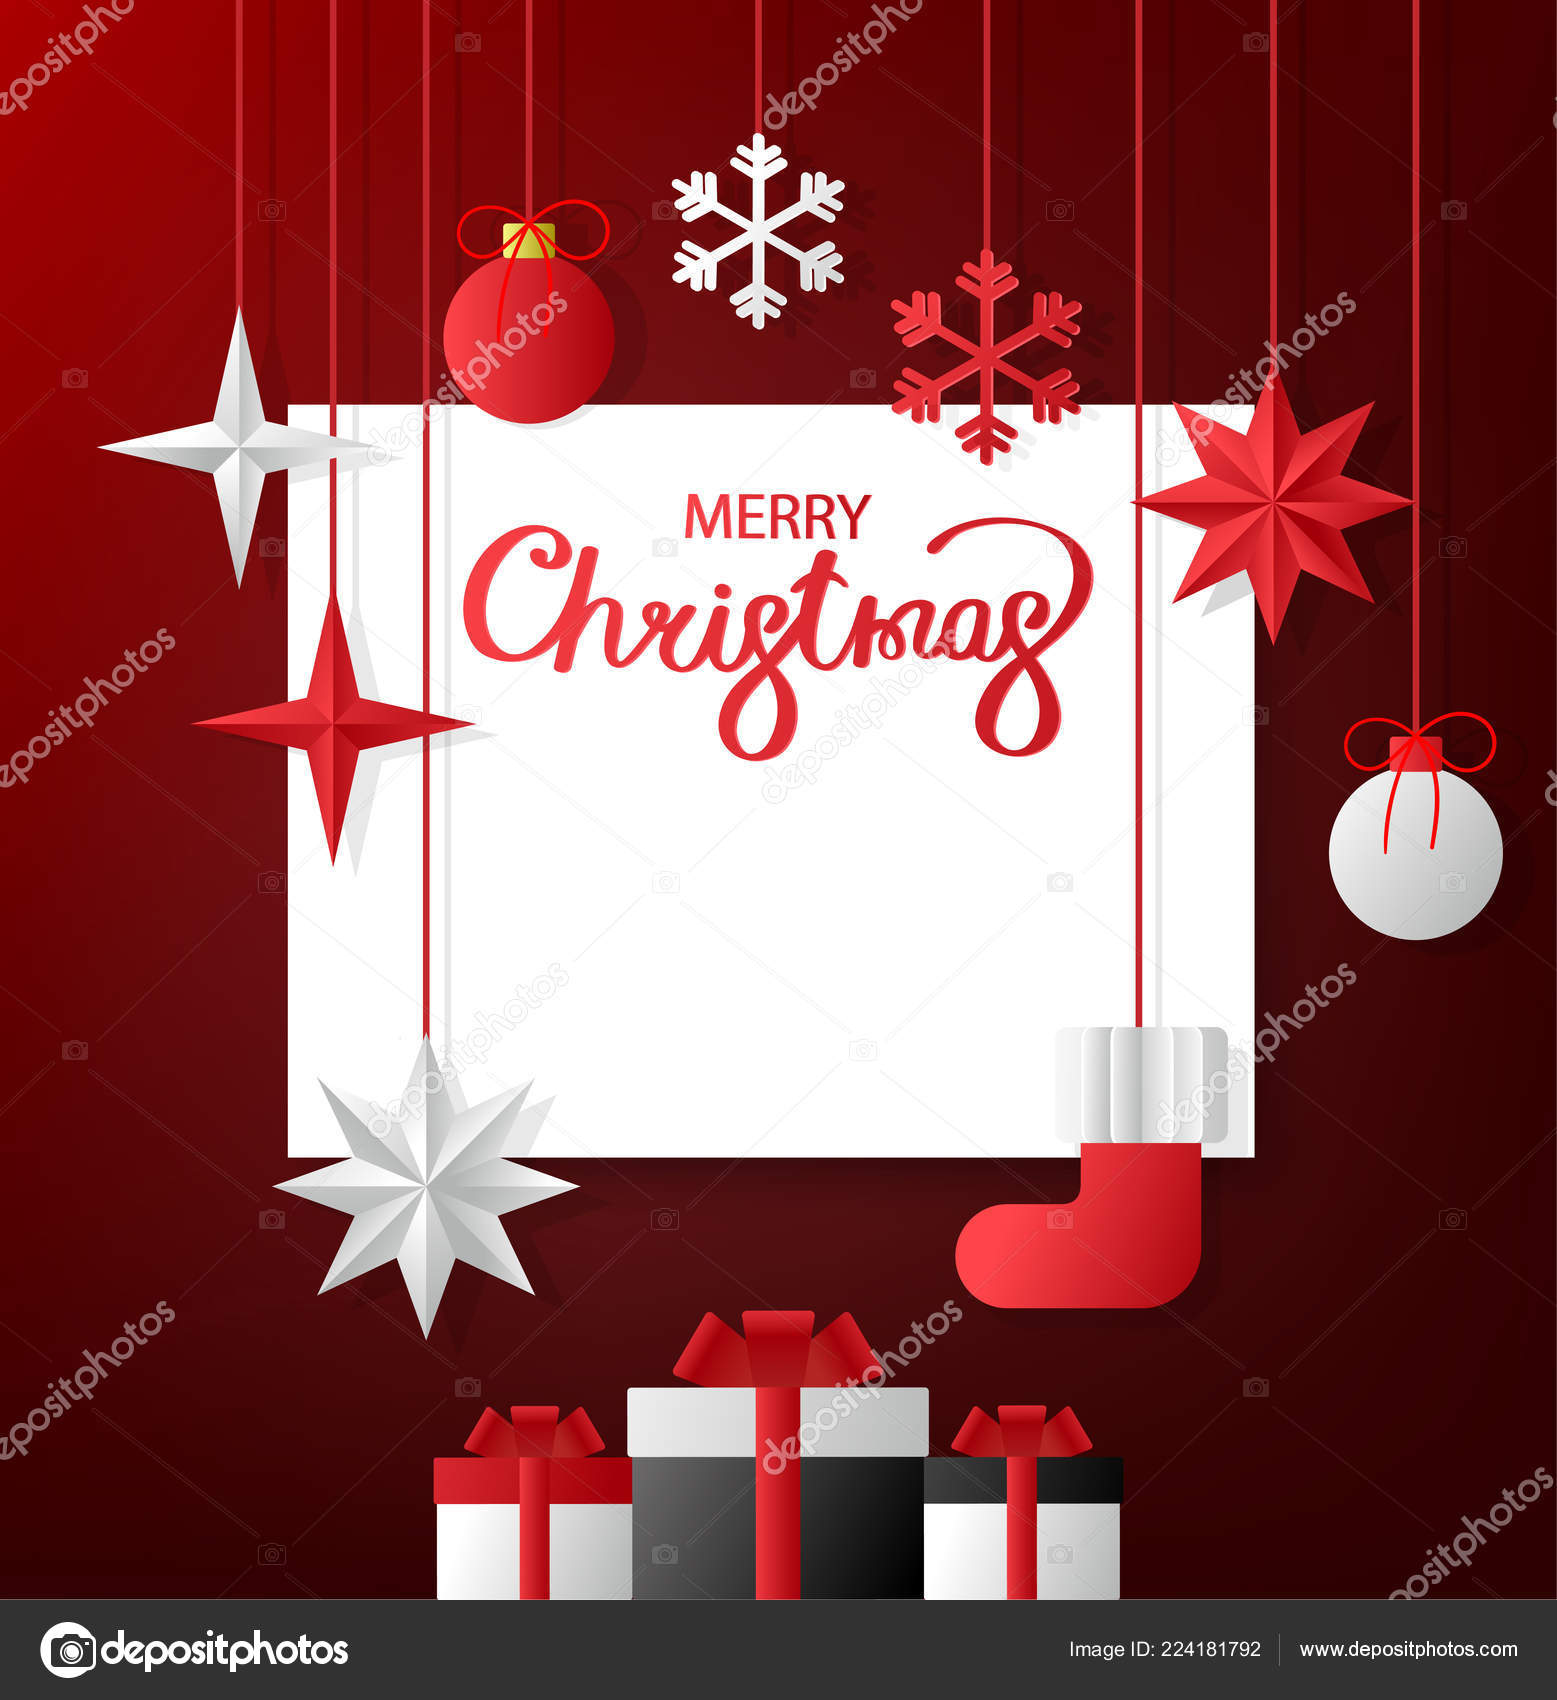 Merry Christmas Greeting Card With Paper Christmas